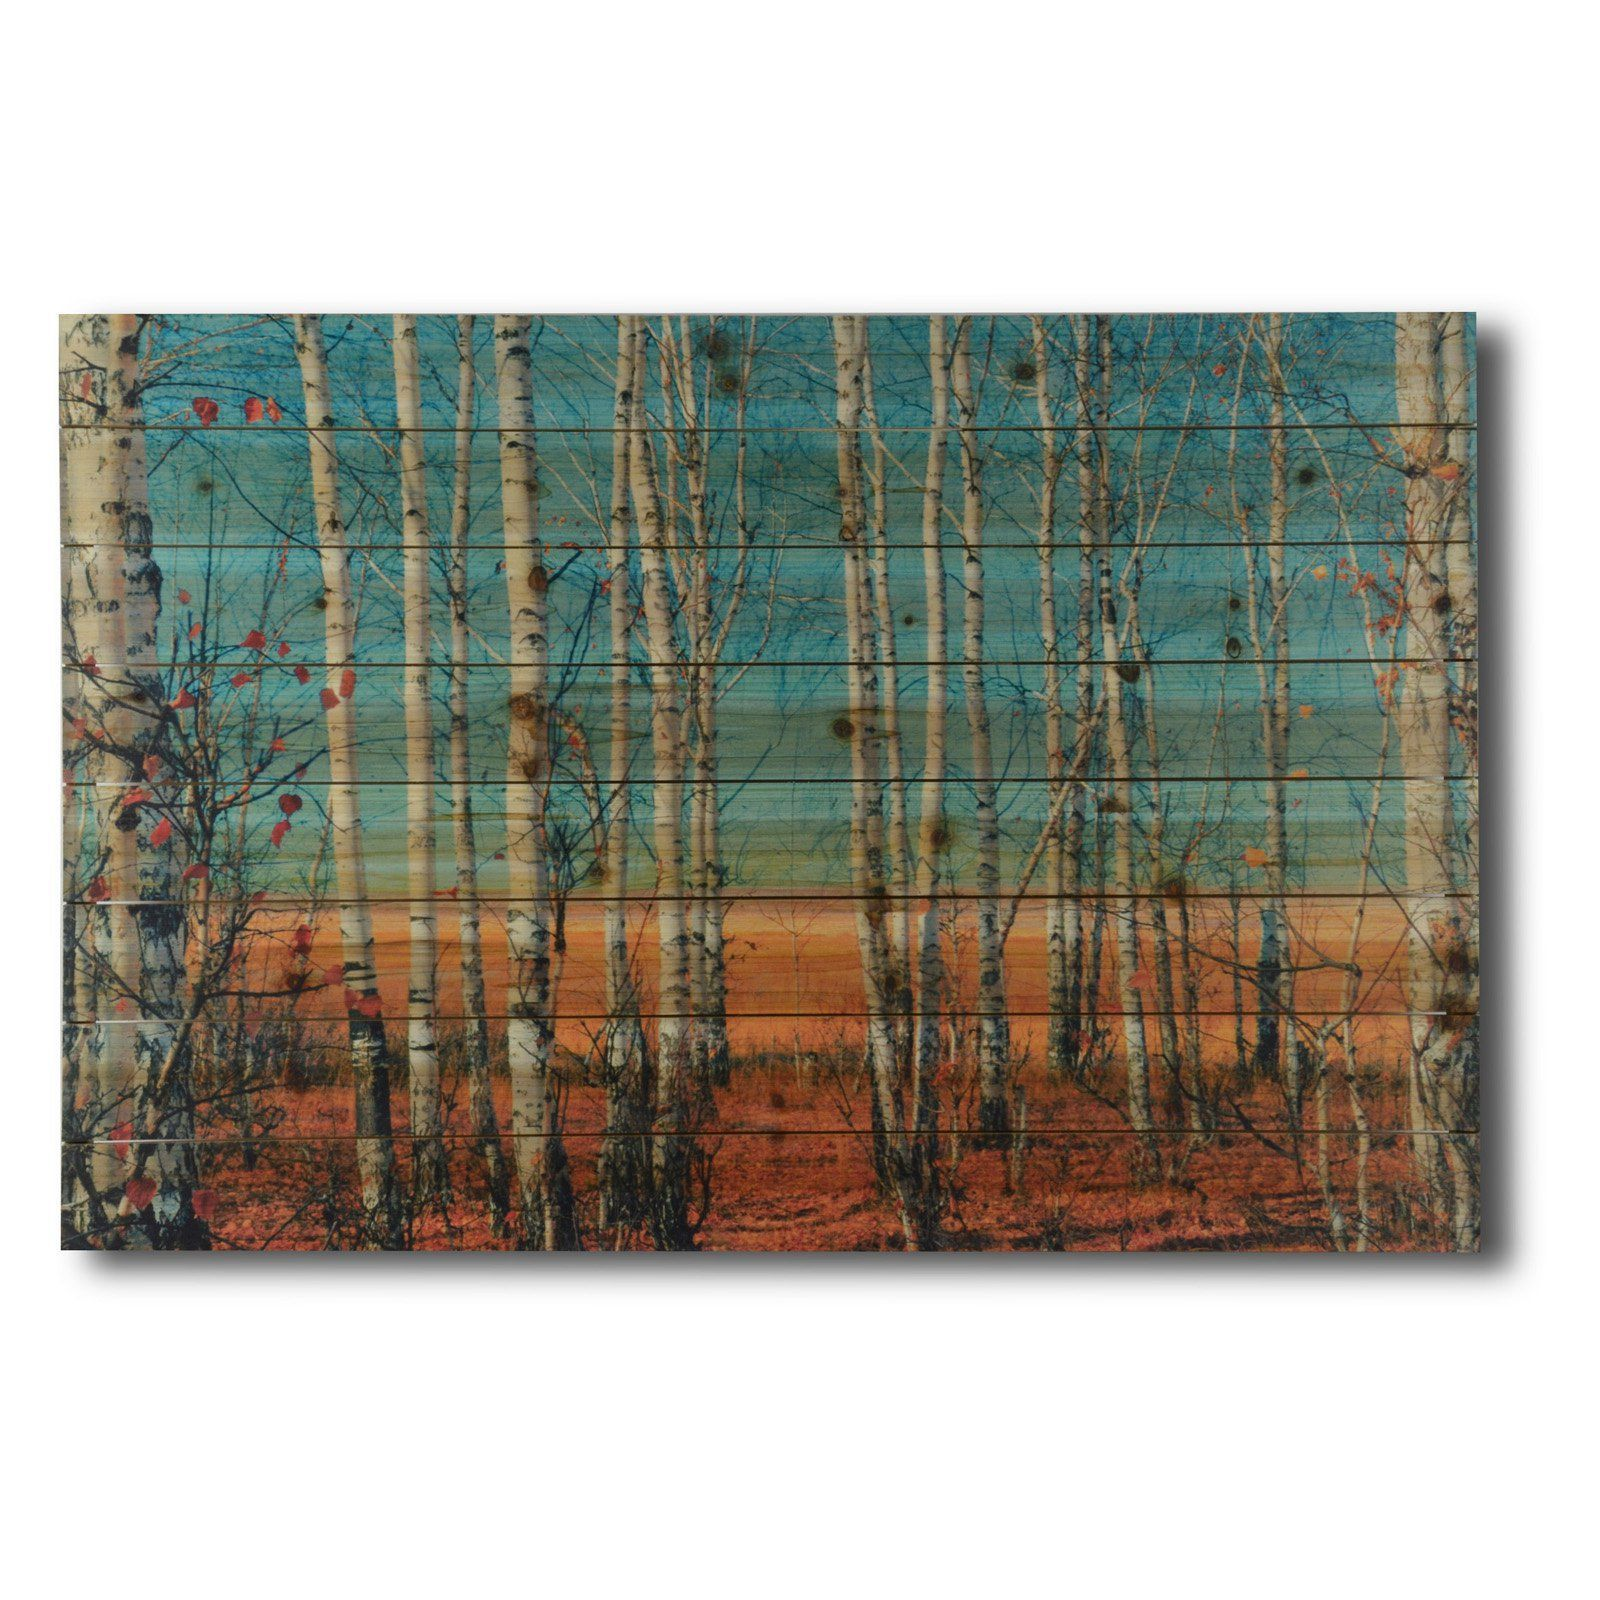 Gallery 57 Birch Trees on Planked Wood - KC2000941A